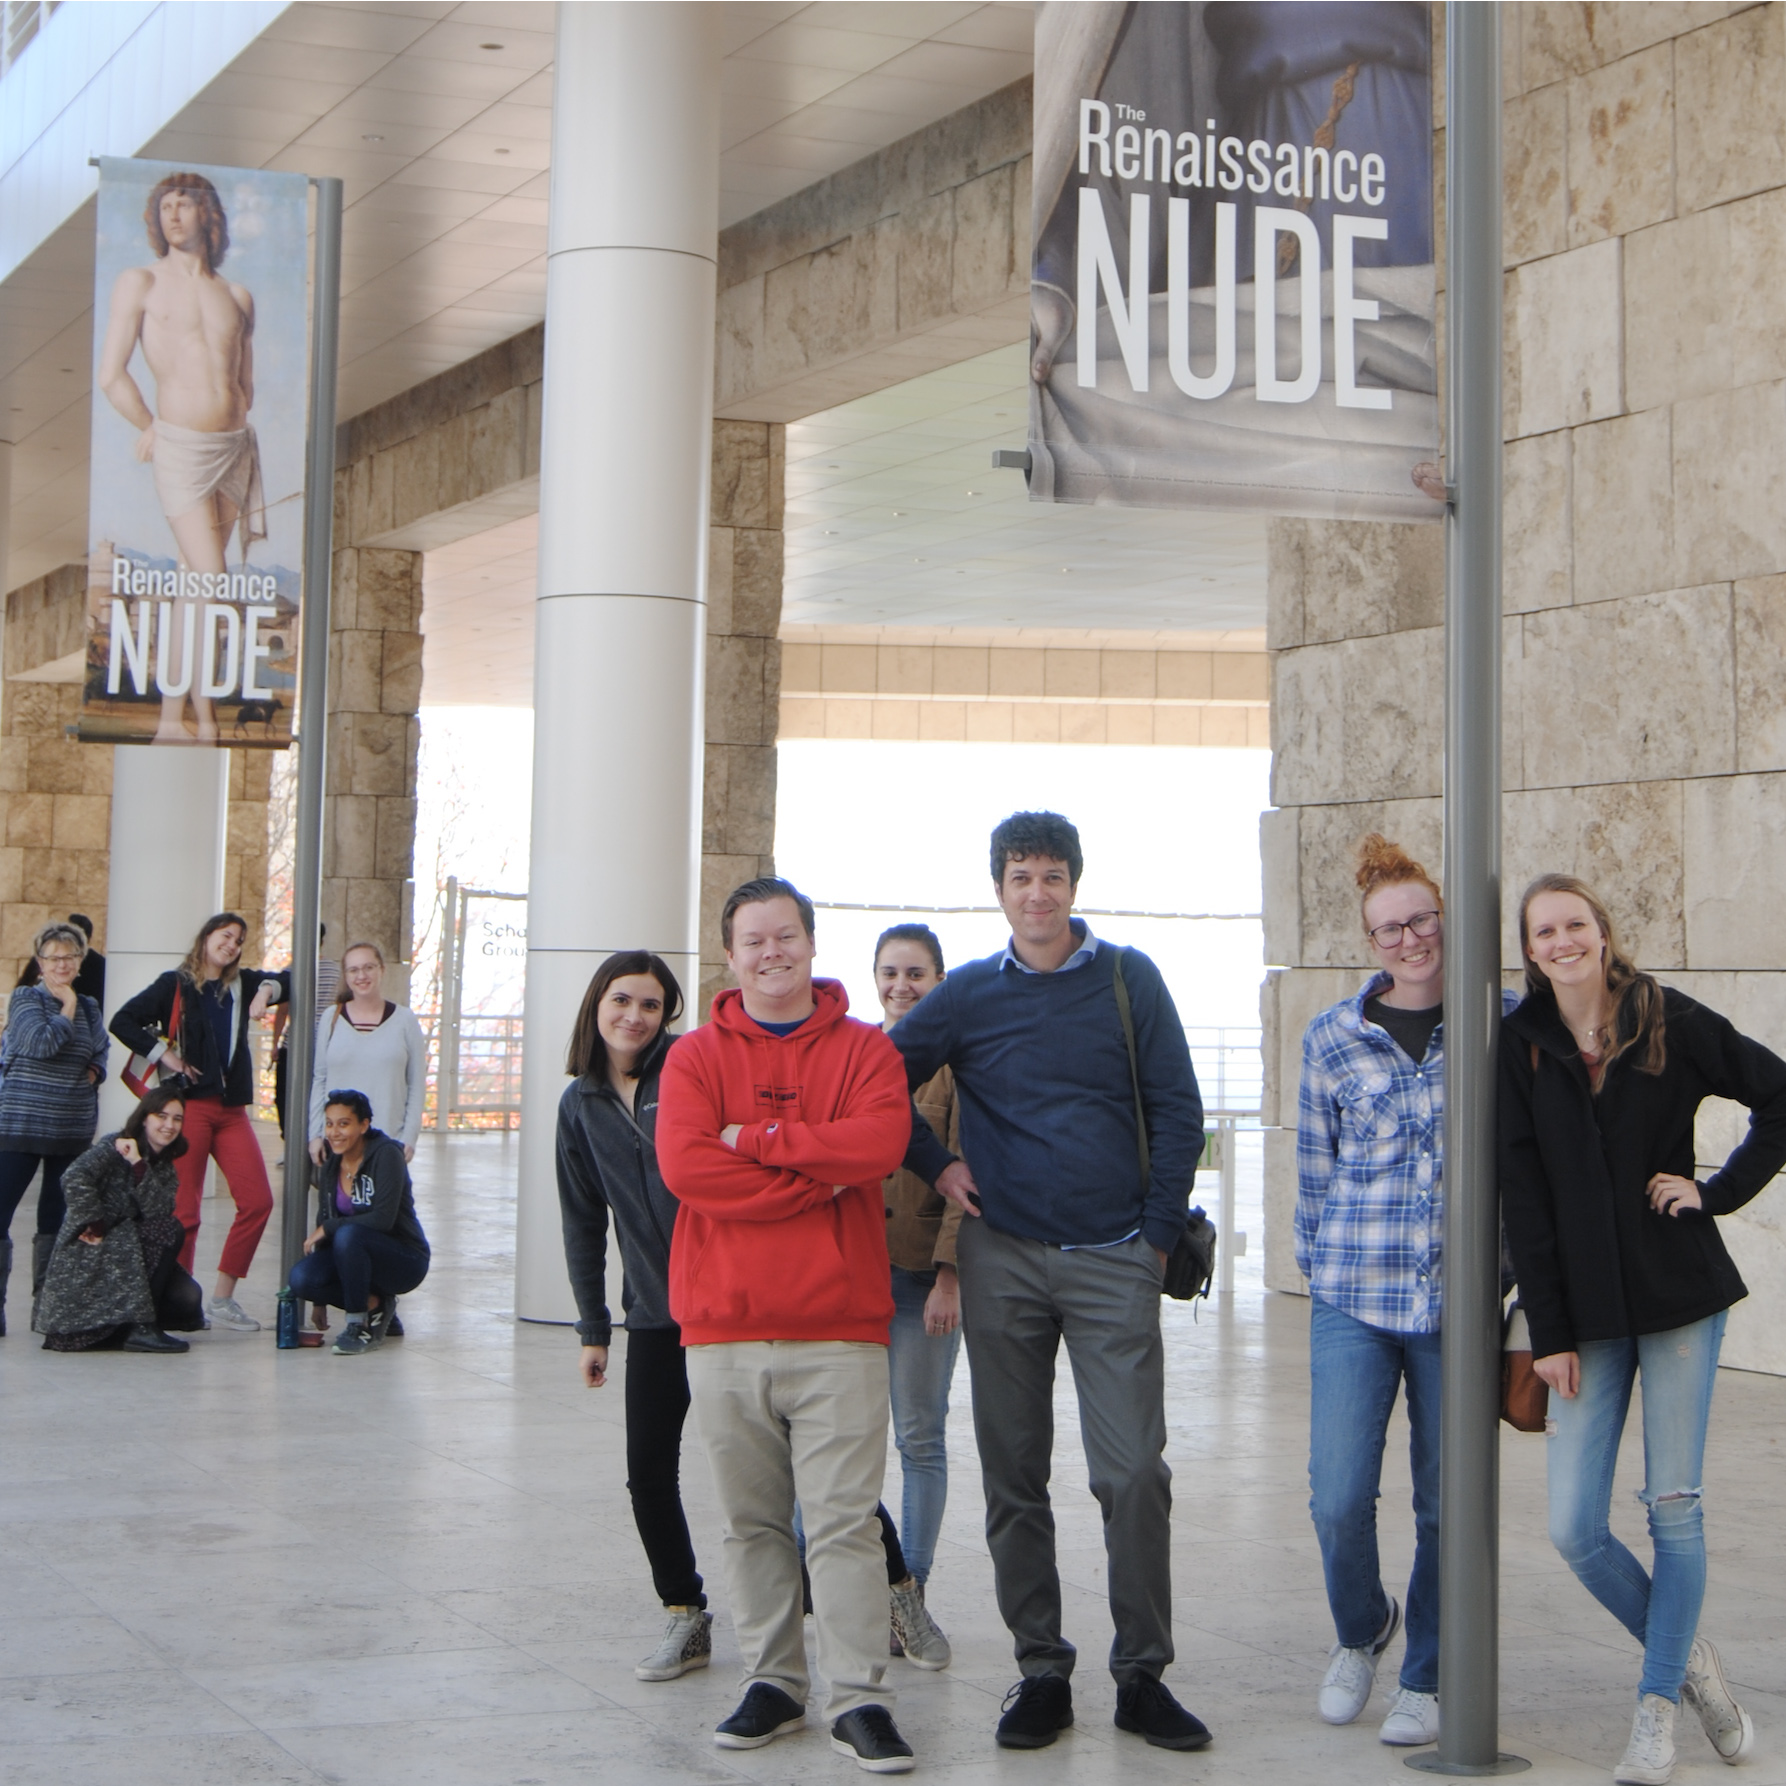 Cal Poly ART students in front of Renaissance Nude Getty Exhibit